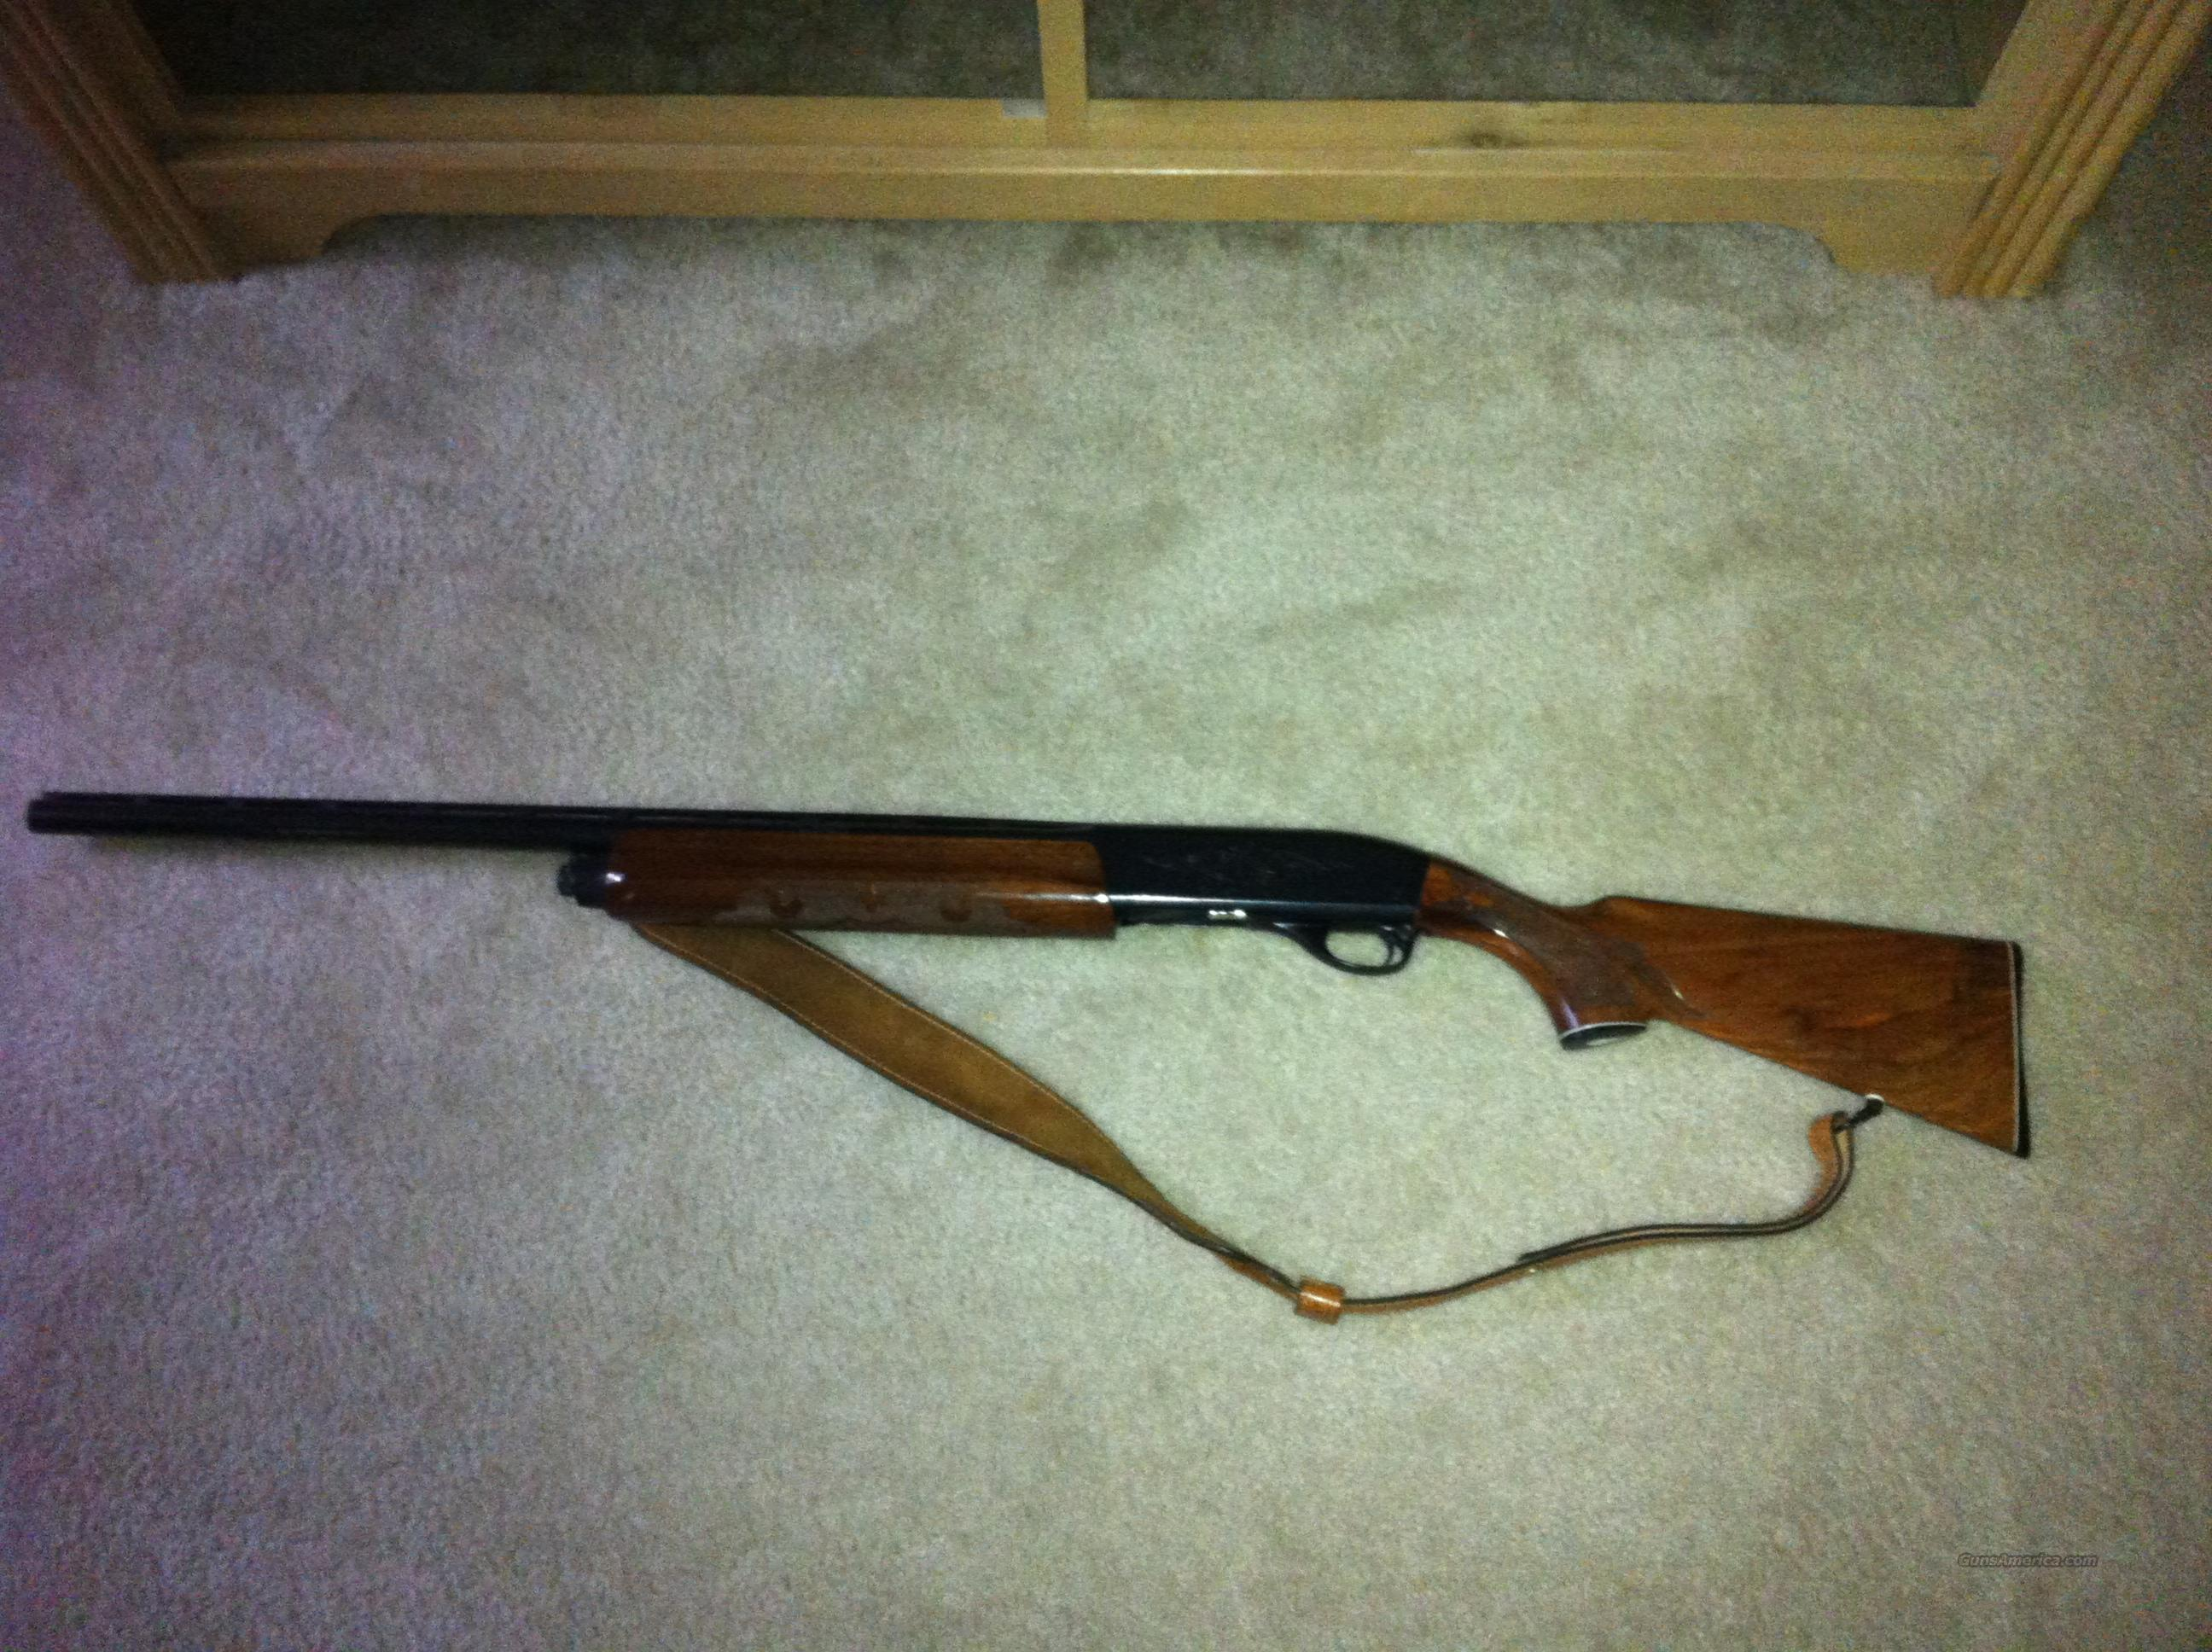 Remington 1100 Auto 12gauge  Guns > Shotguns > Remington Shotguns  > Single Barrel